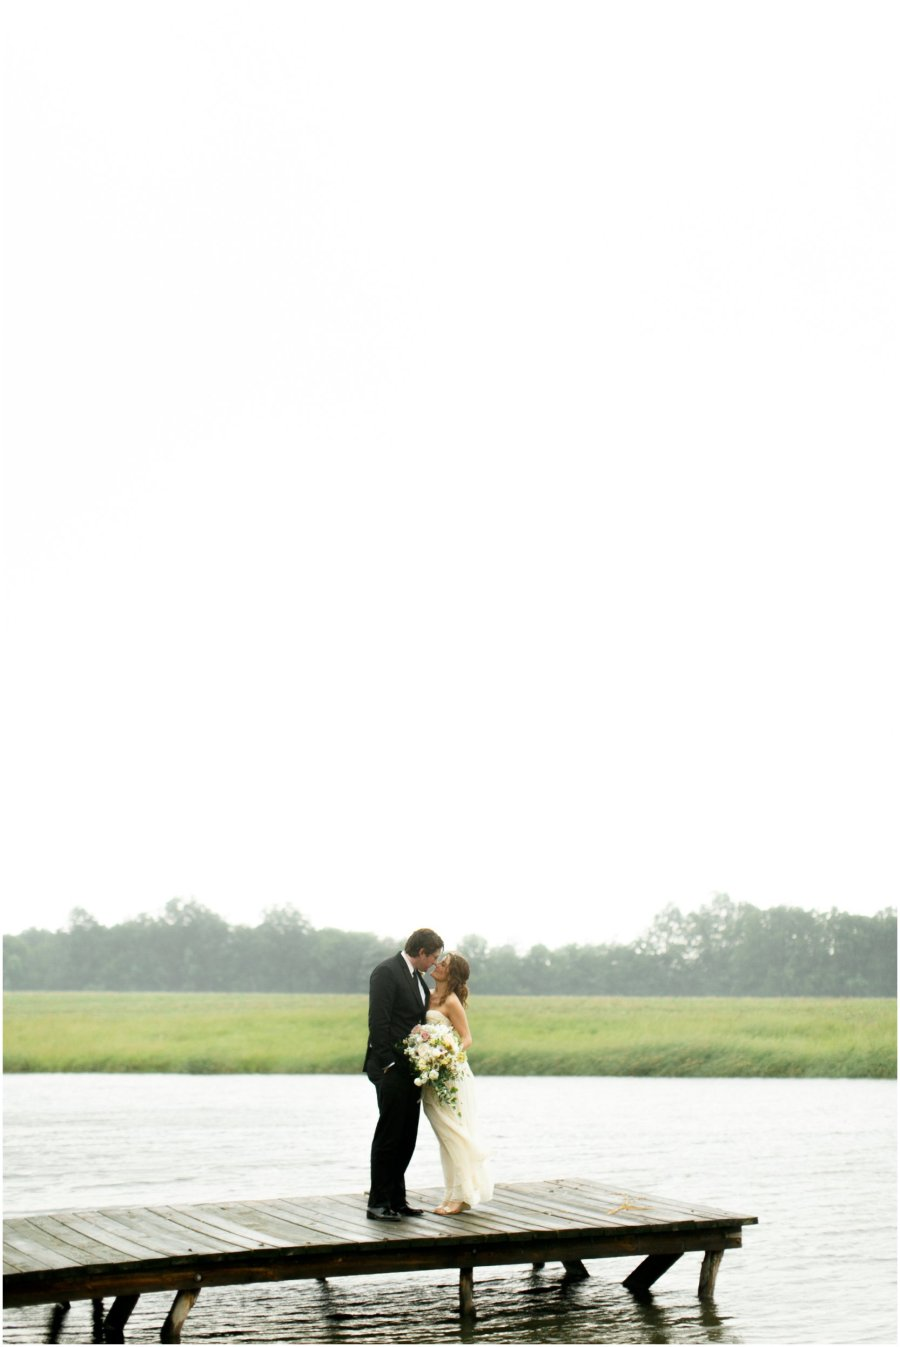 Allison + Brad's Romantic Rainy Day Wedding | Alea Lovely Fine Art Photography